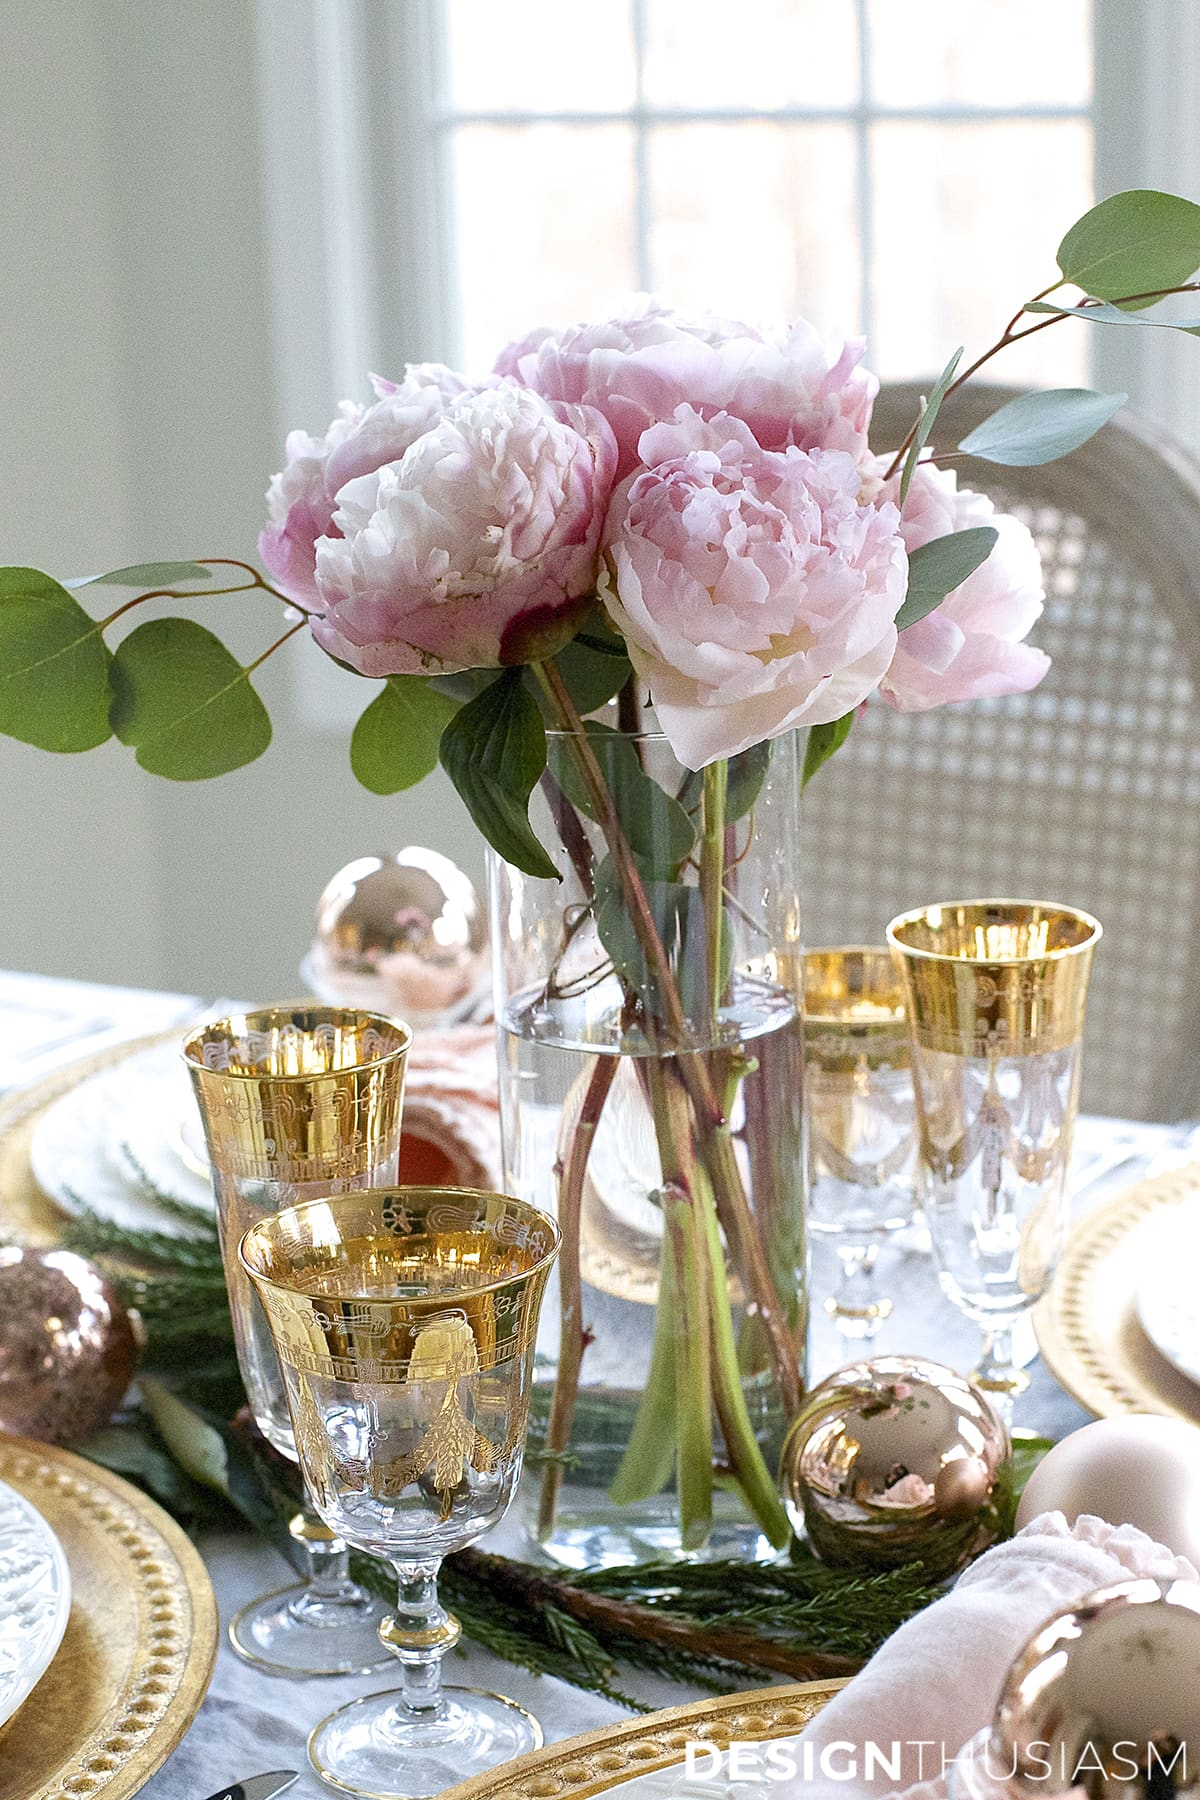 Elegant Christmas Table Setting in Pink and Gold | Designthusiasm.com